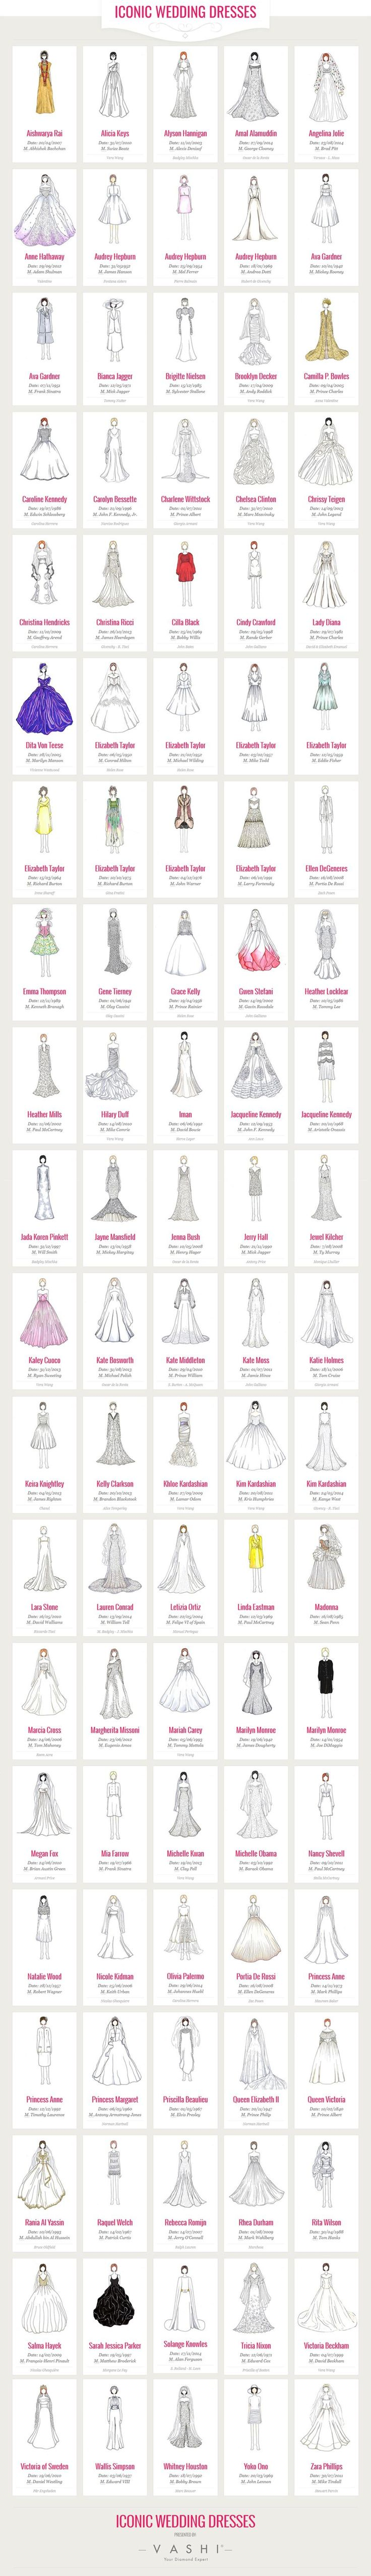 The comprehensive guide to the 100 most Iconic Celebrity Wedding Dress Drawings by Vashi.